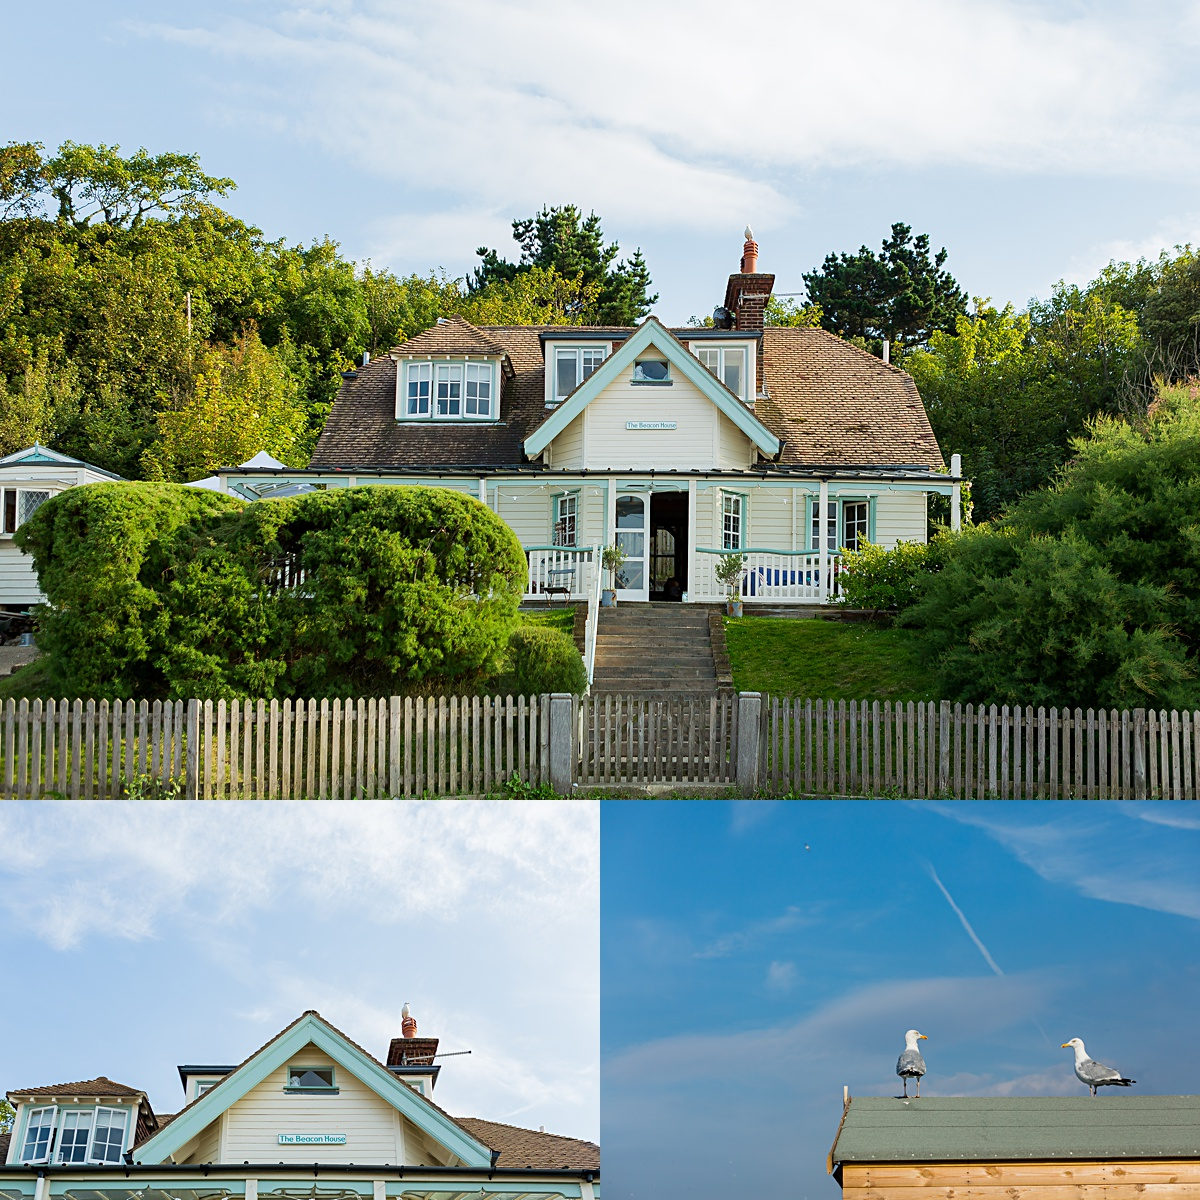 The Beacon House Whitstable